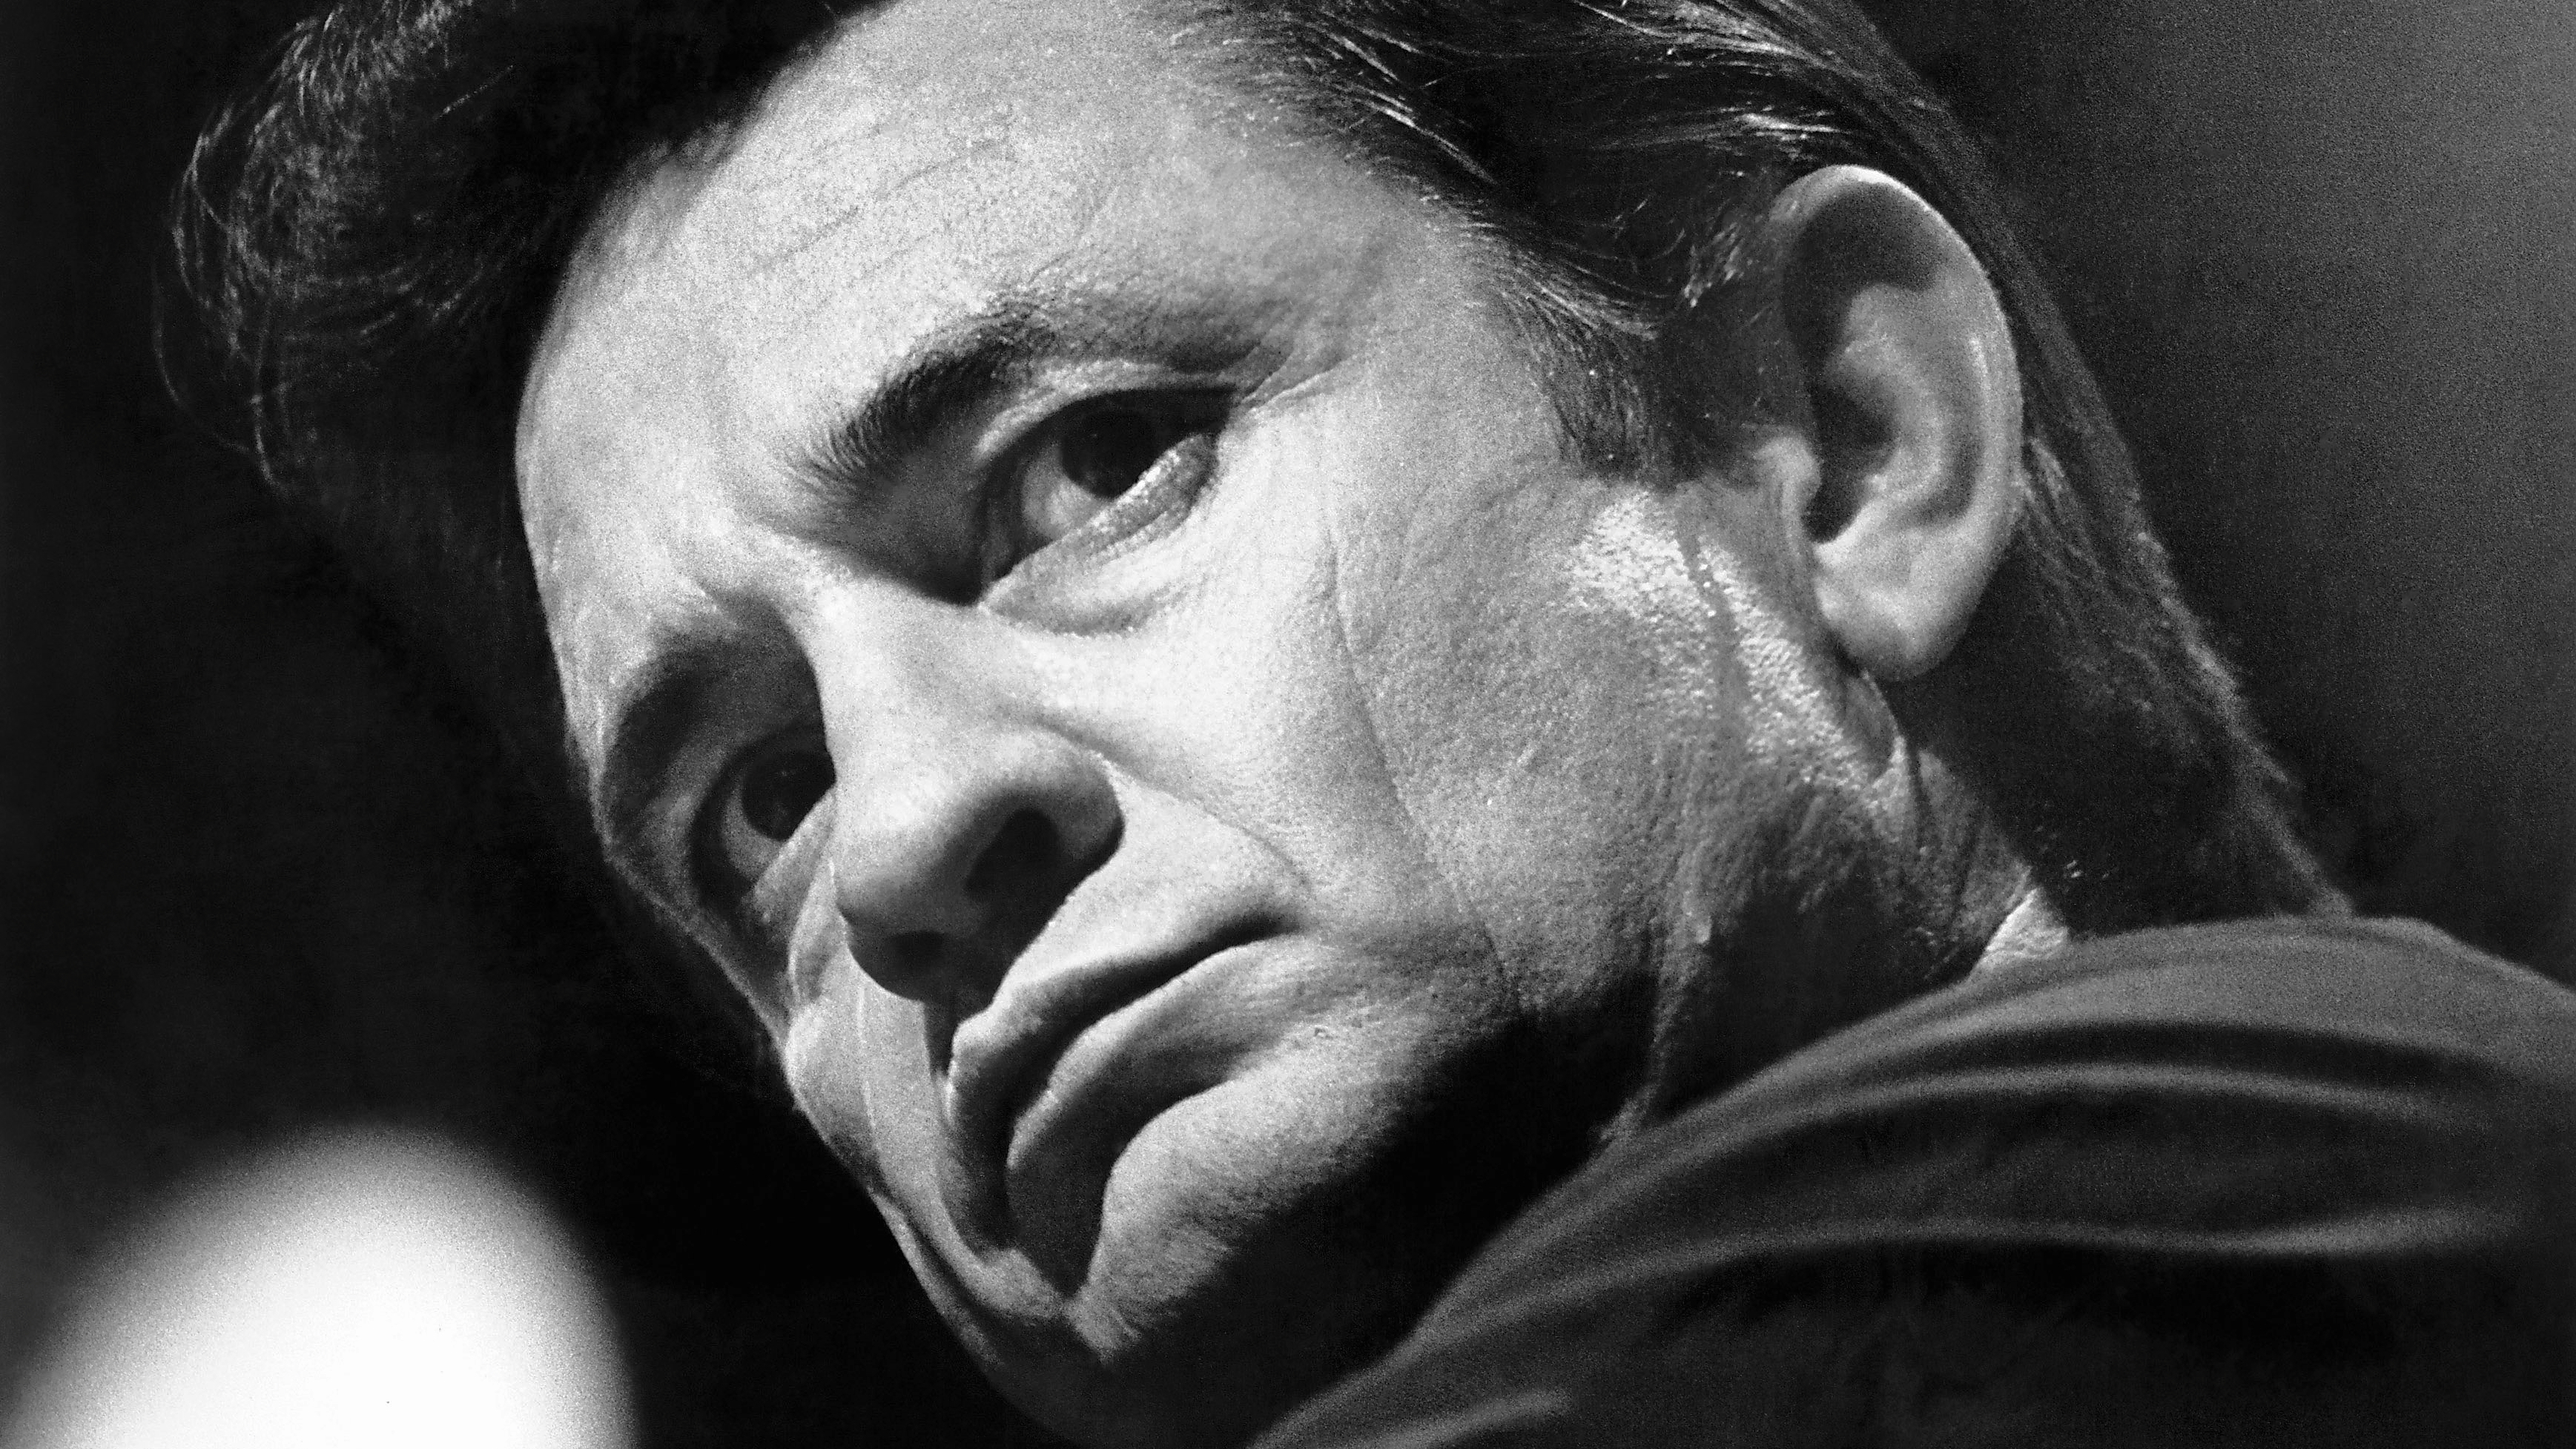 johnny_cash_show_question_10_16-9